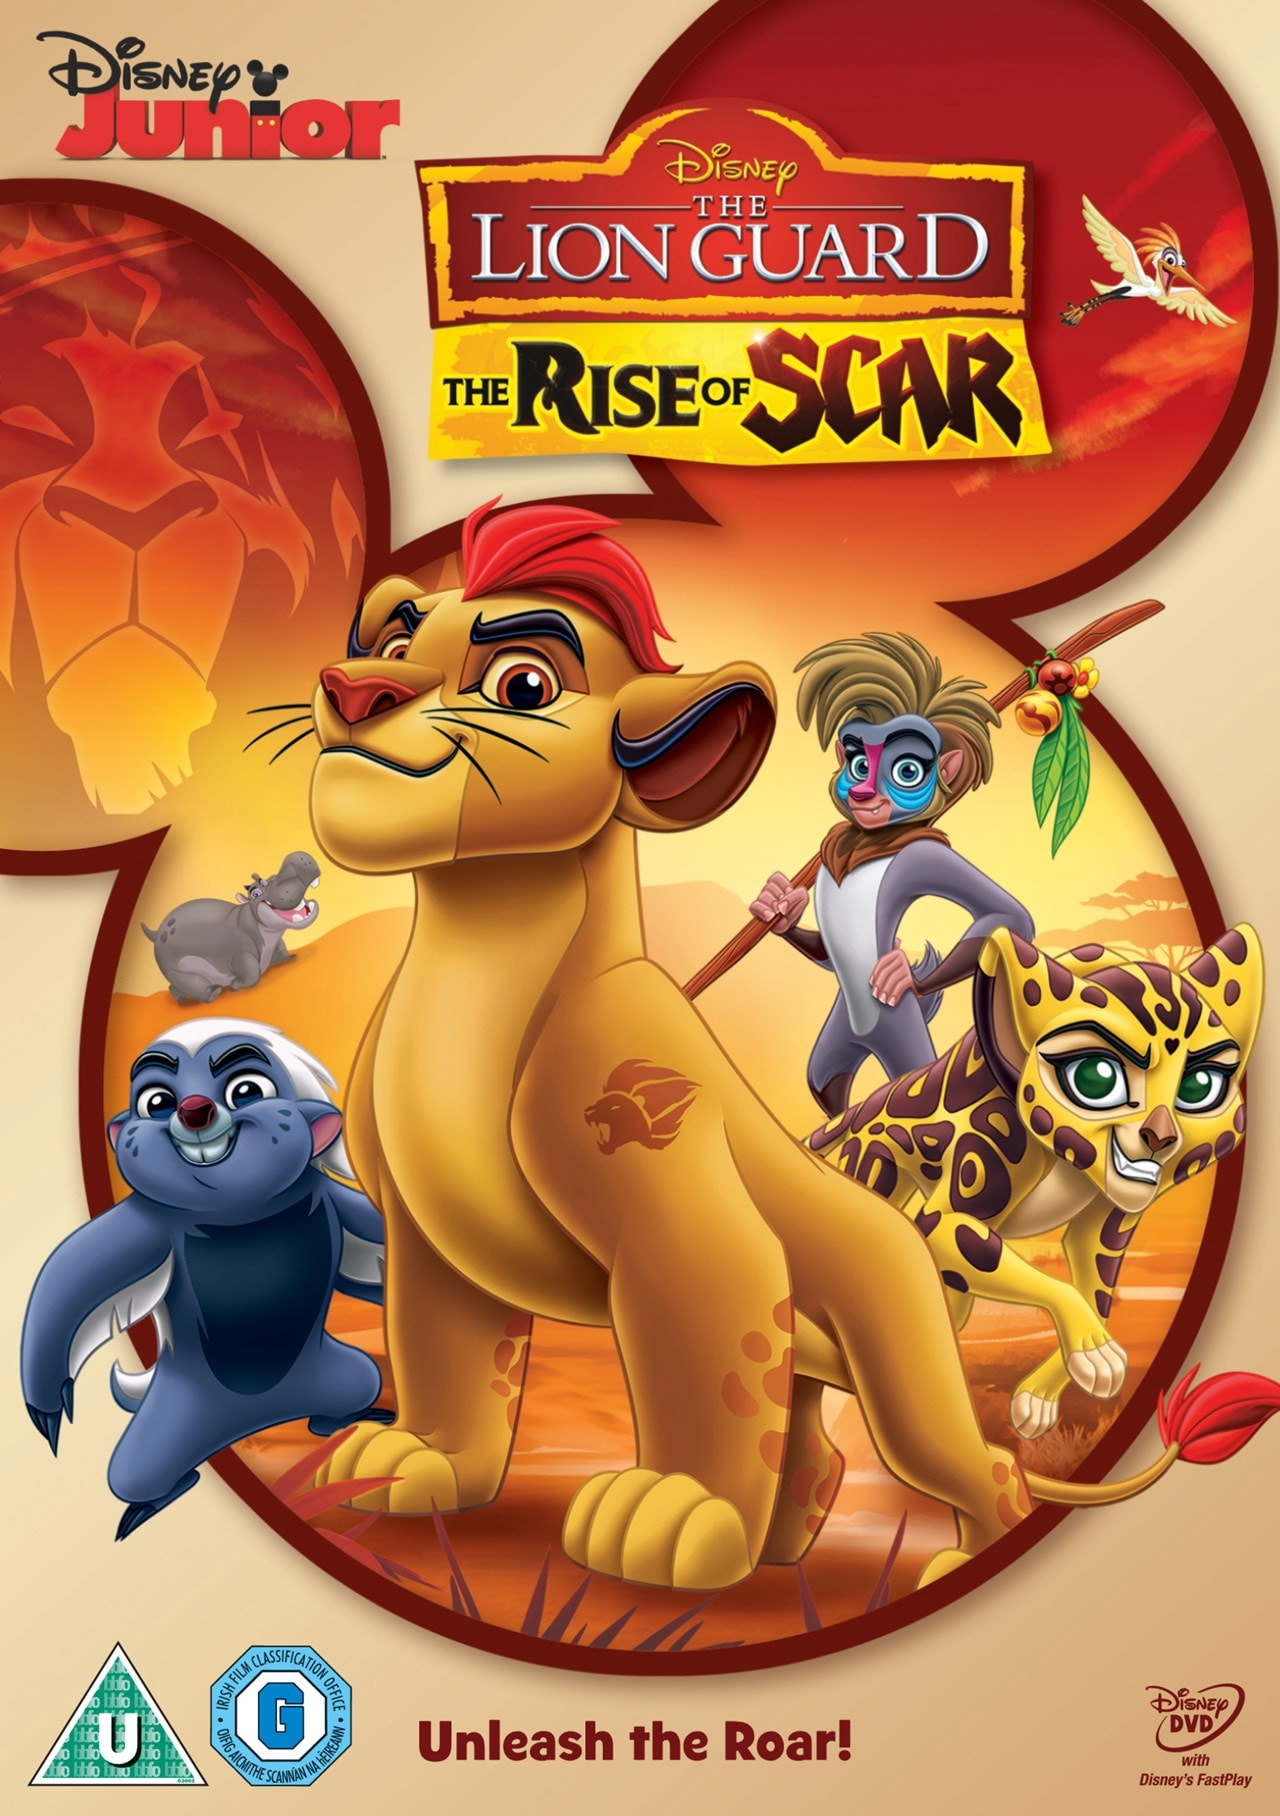 The Lion Guard - The Rise of Scar - 1